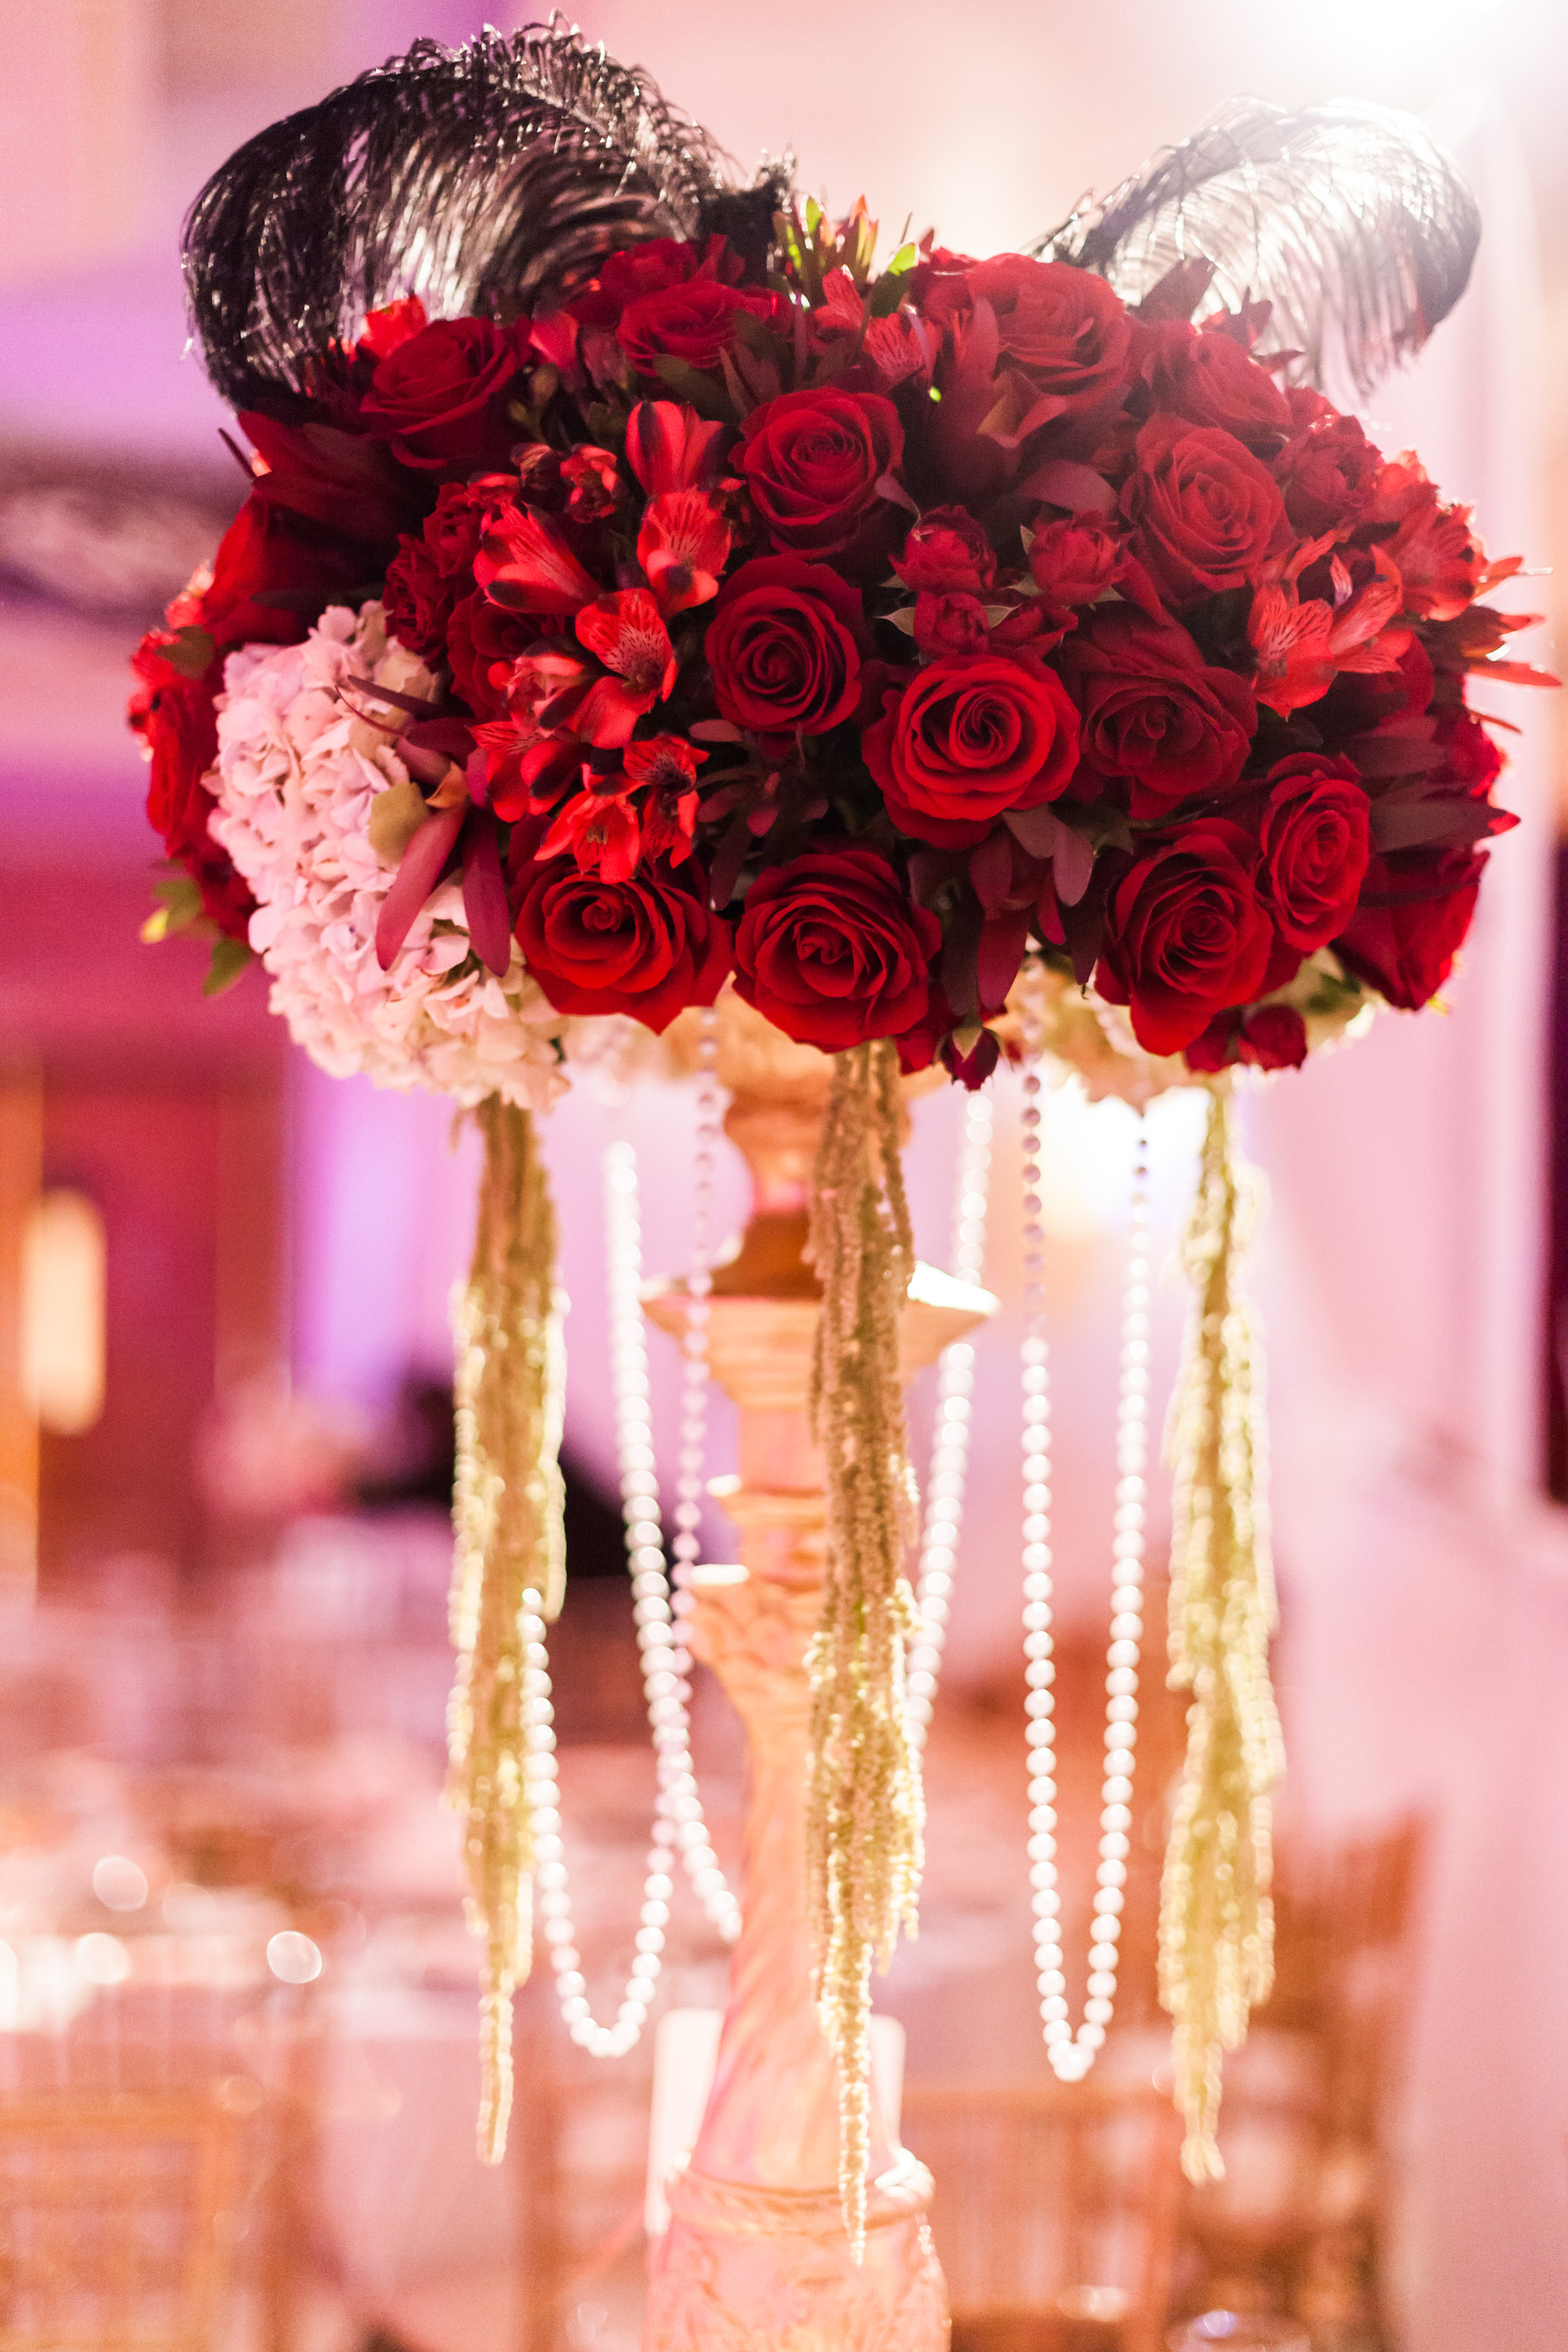 Epic-wedding-in-los-angeles-california-weddings-red-rose-with-feathers-pearls-centerpiece.original